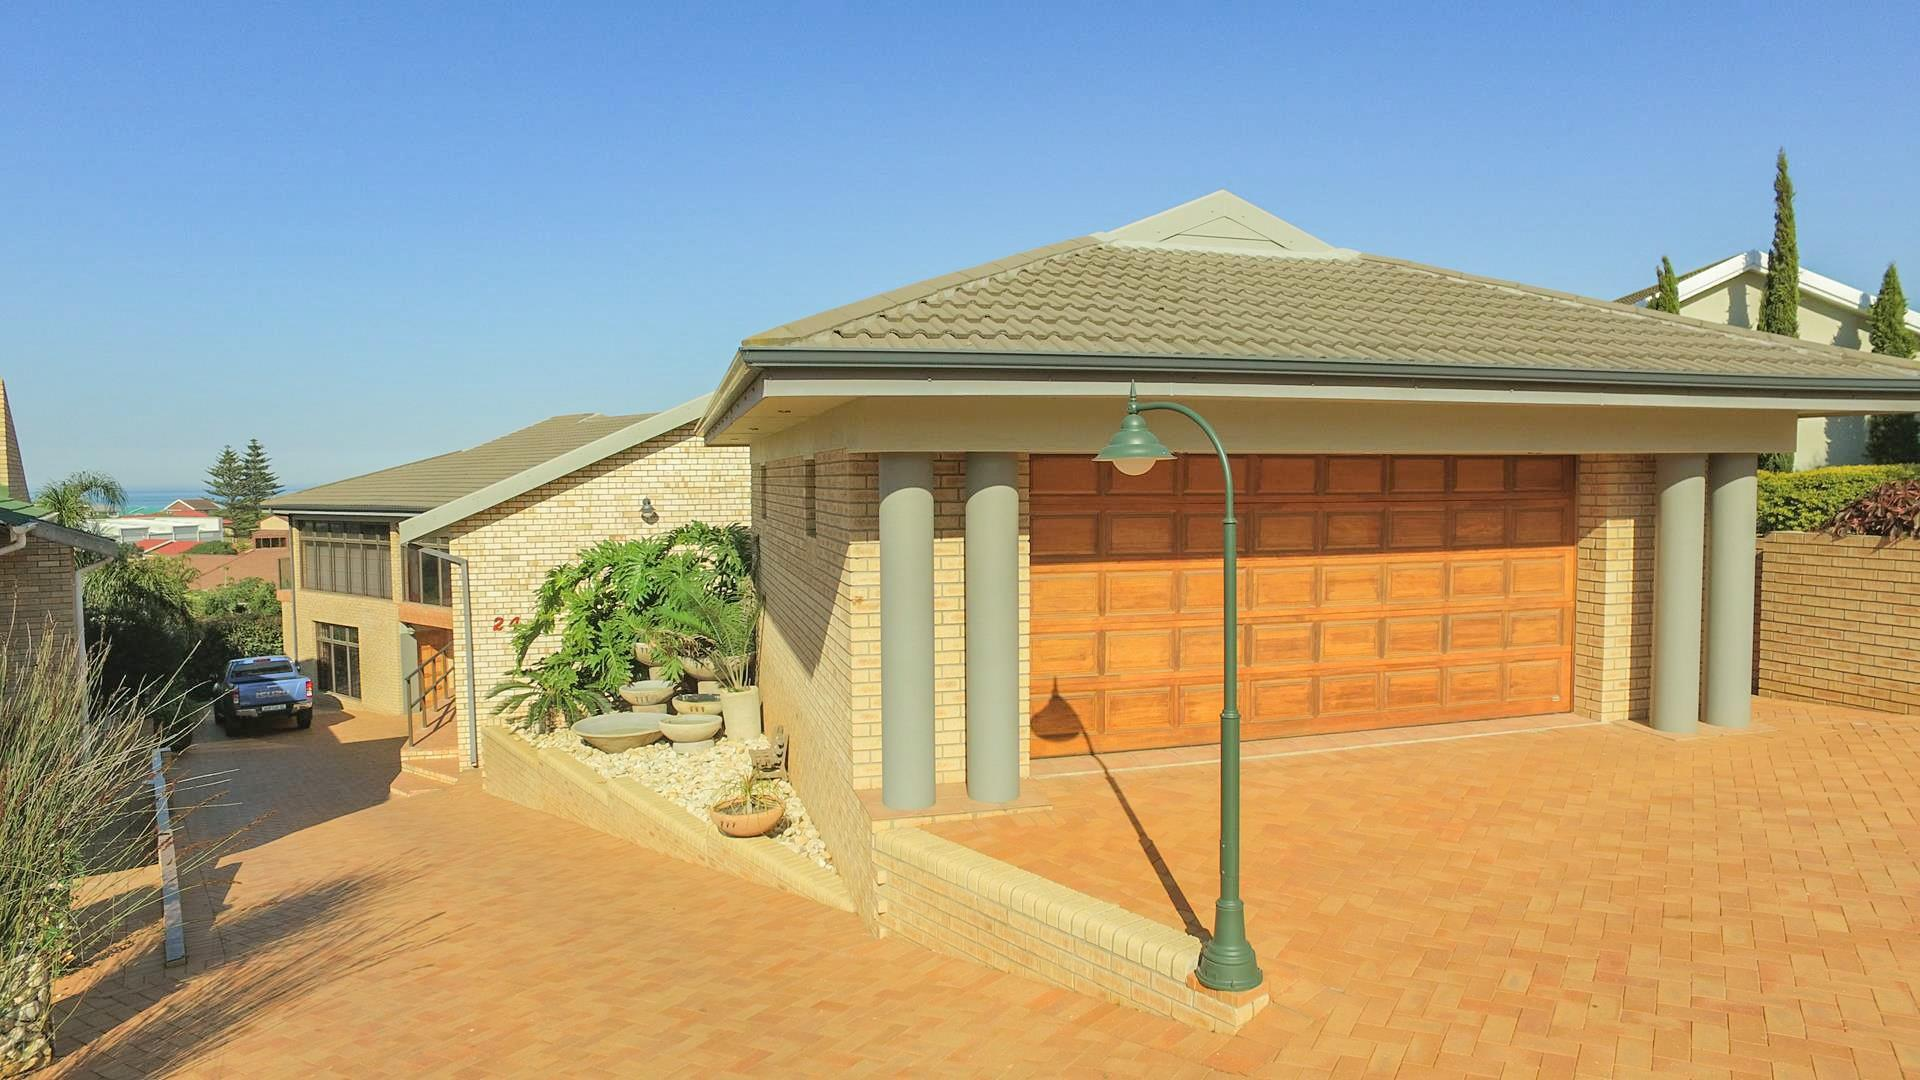 6 Bedroom House For Sale in Ferreira Town